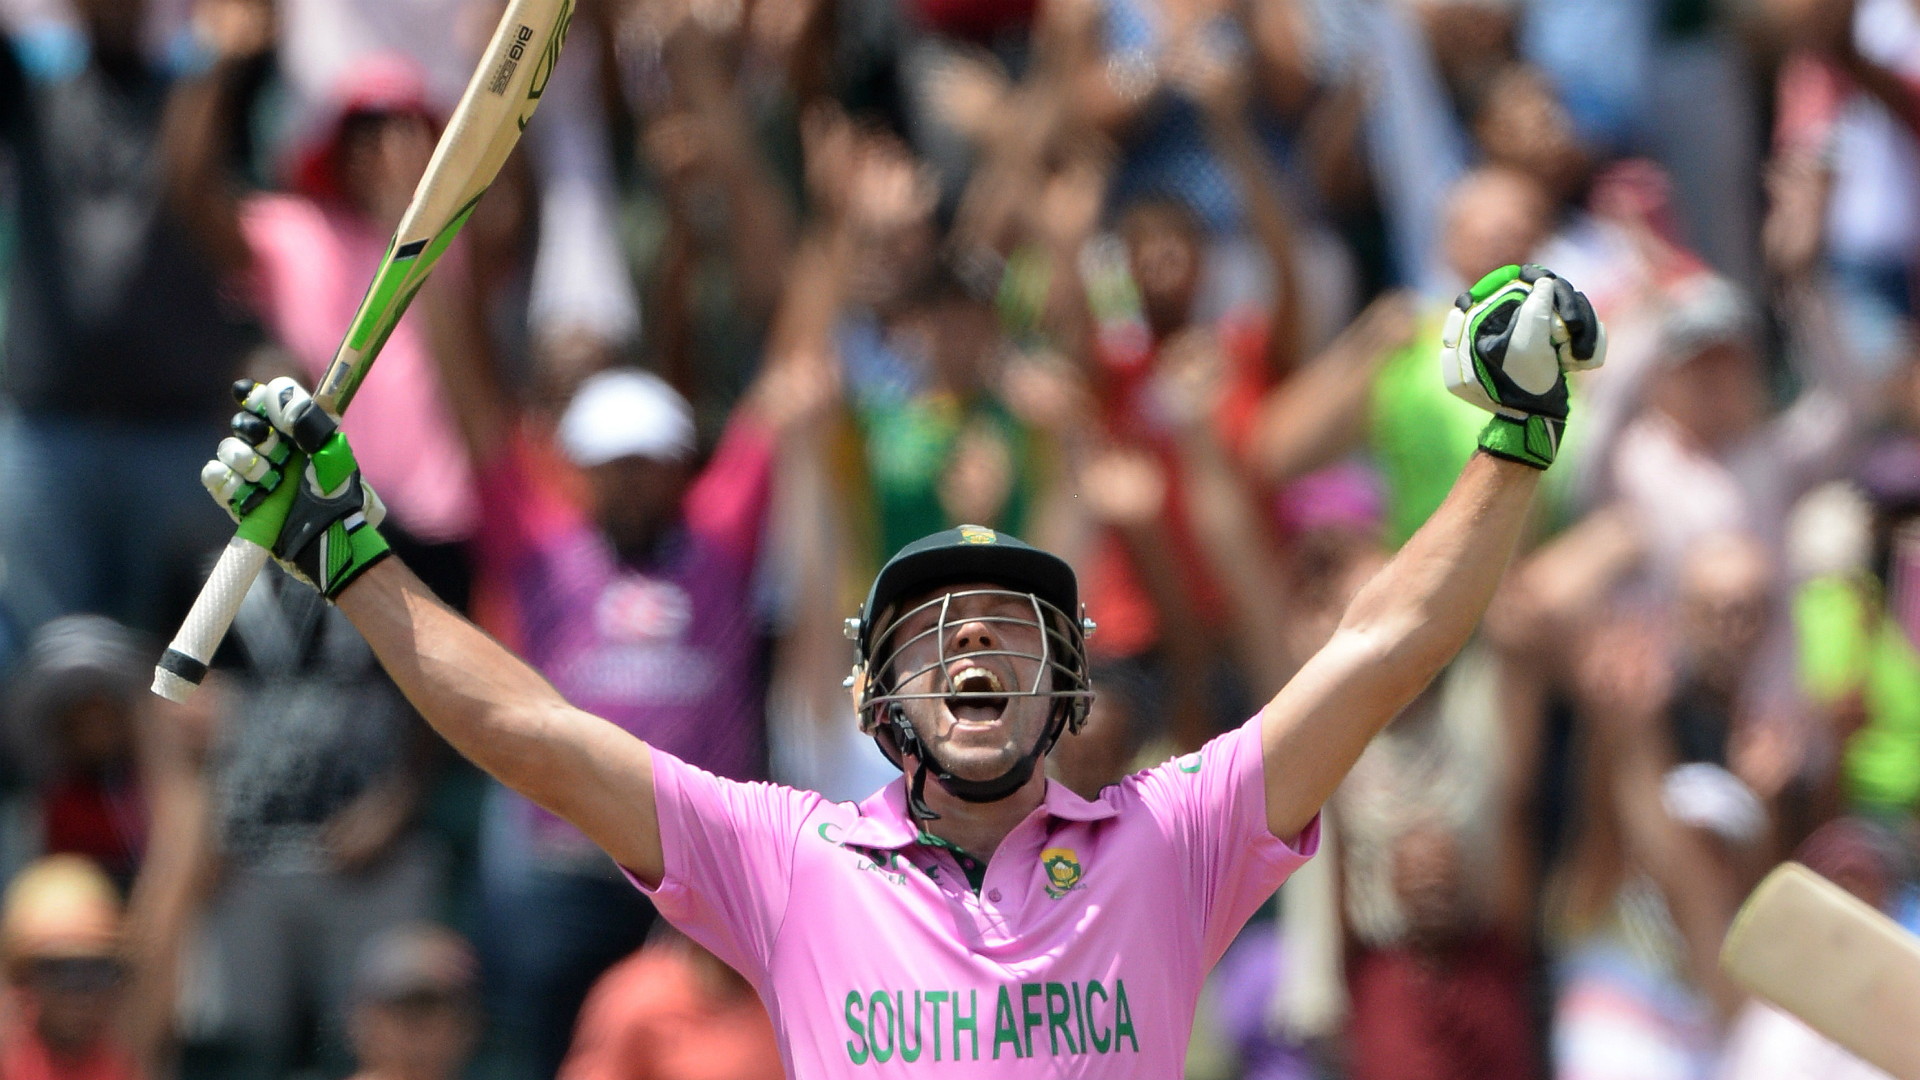 South Africa batsman AB de Villiers calls time on global cricket